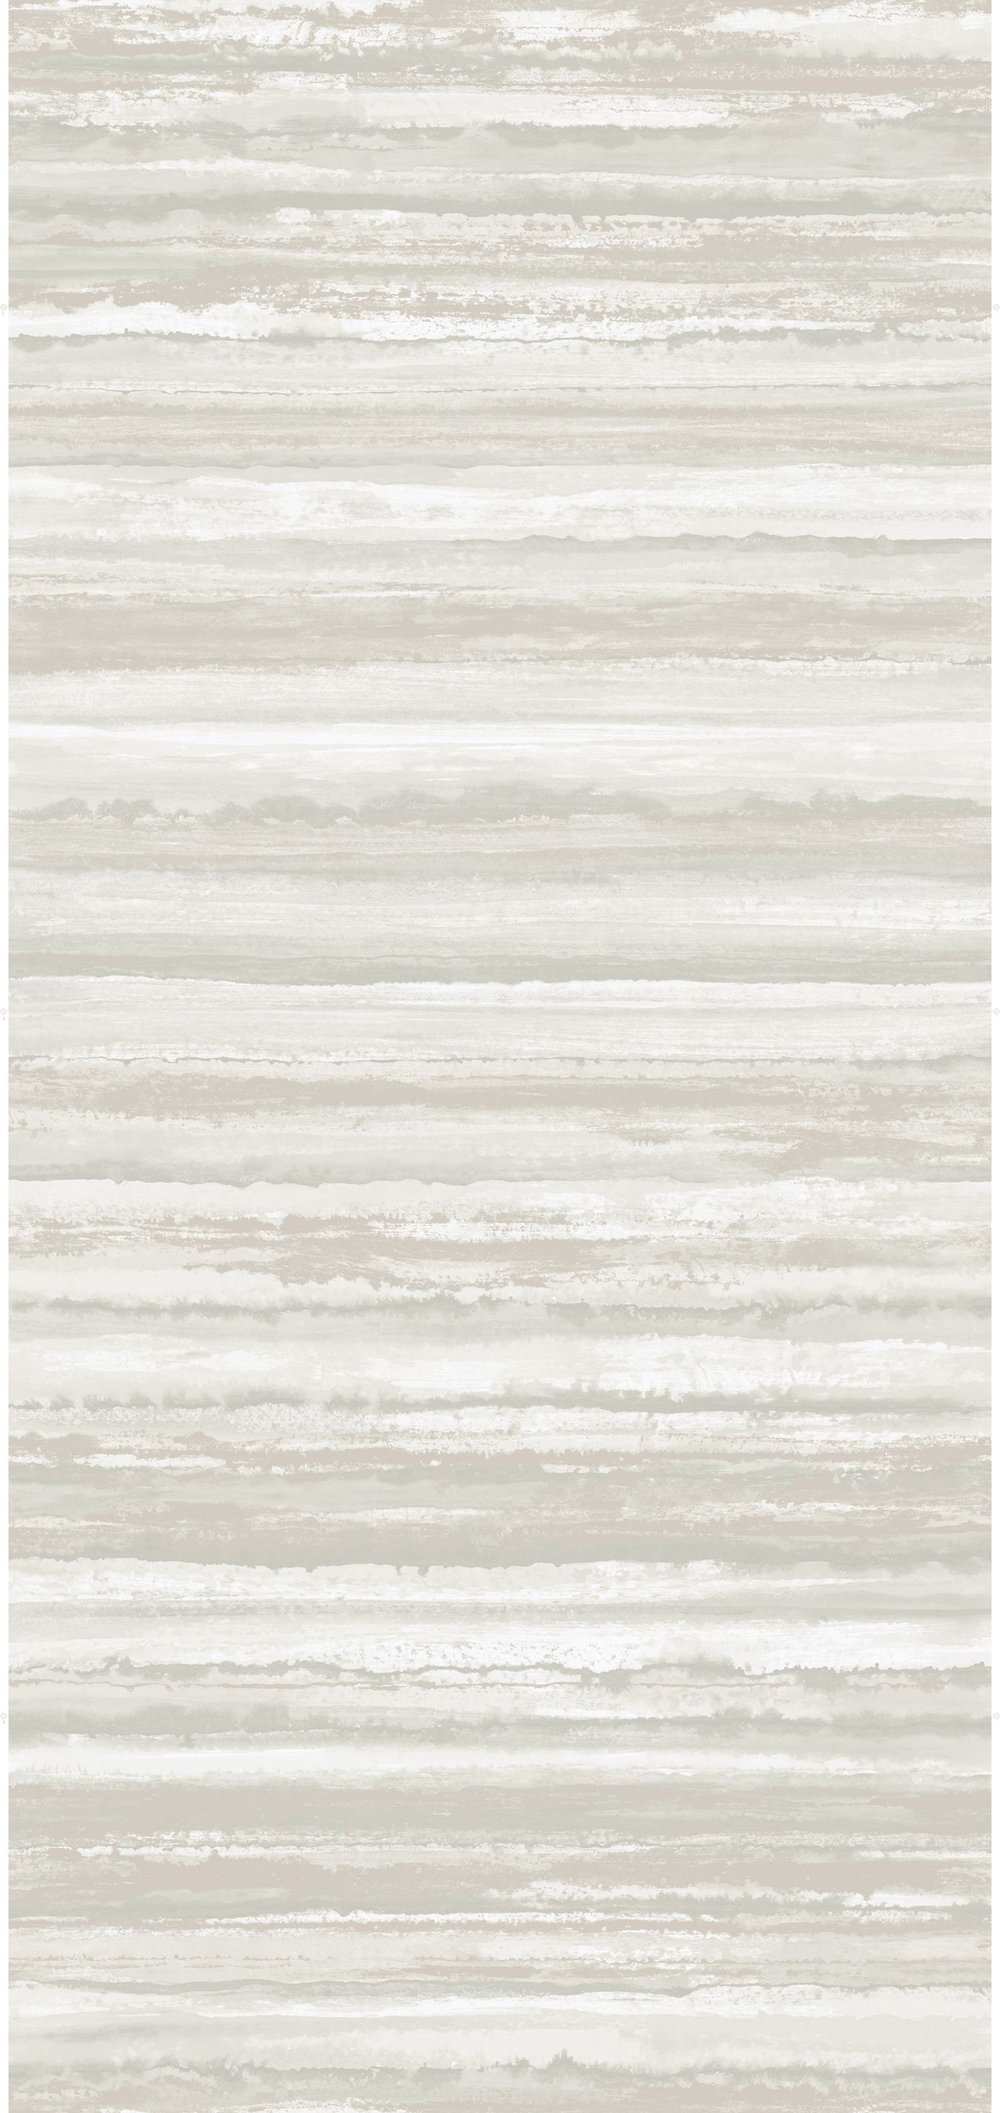 Therassia Wallpaper - Travertine - by Anthology